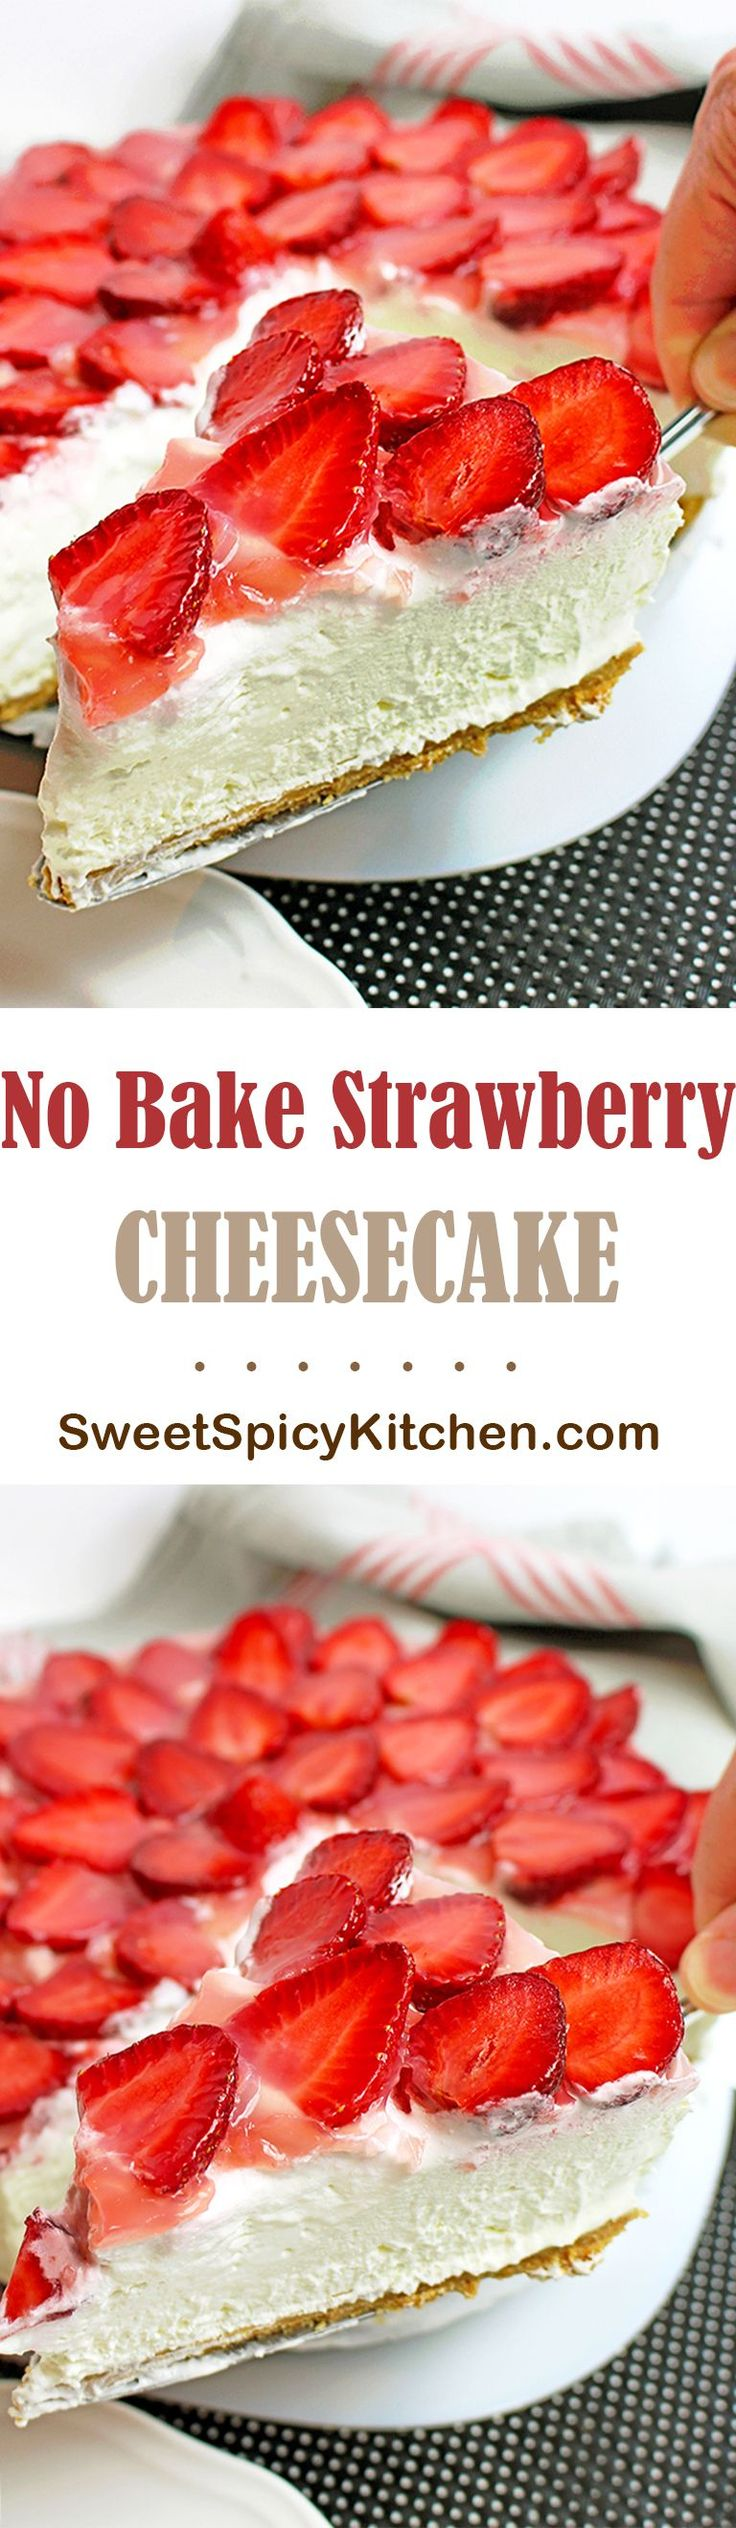 Easy No Bake Strawberry Cheesecake recipe is a perfect homemade dessert rich with graham cracker crust,cream cheese,lemon juice and fresh&juicy strawberries